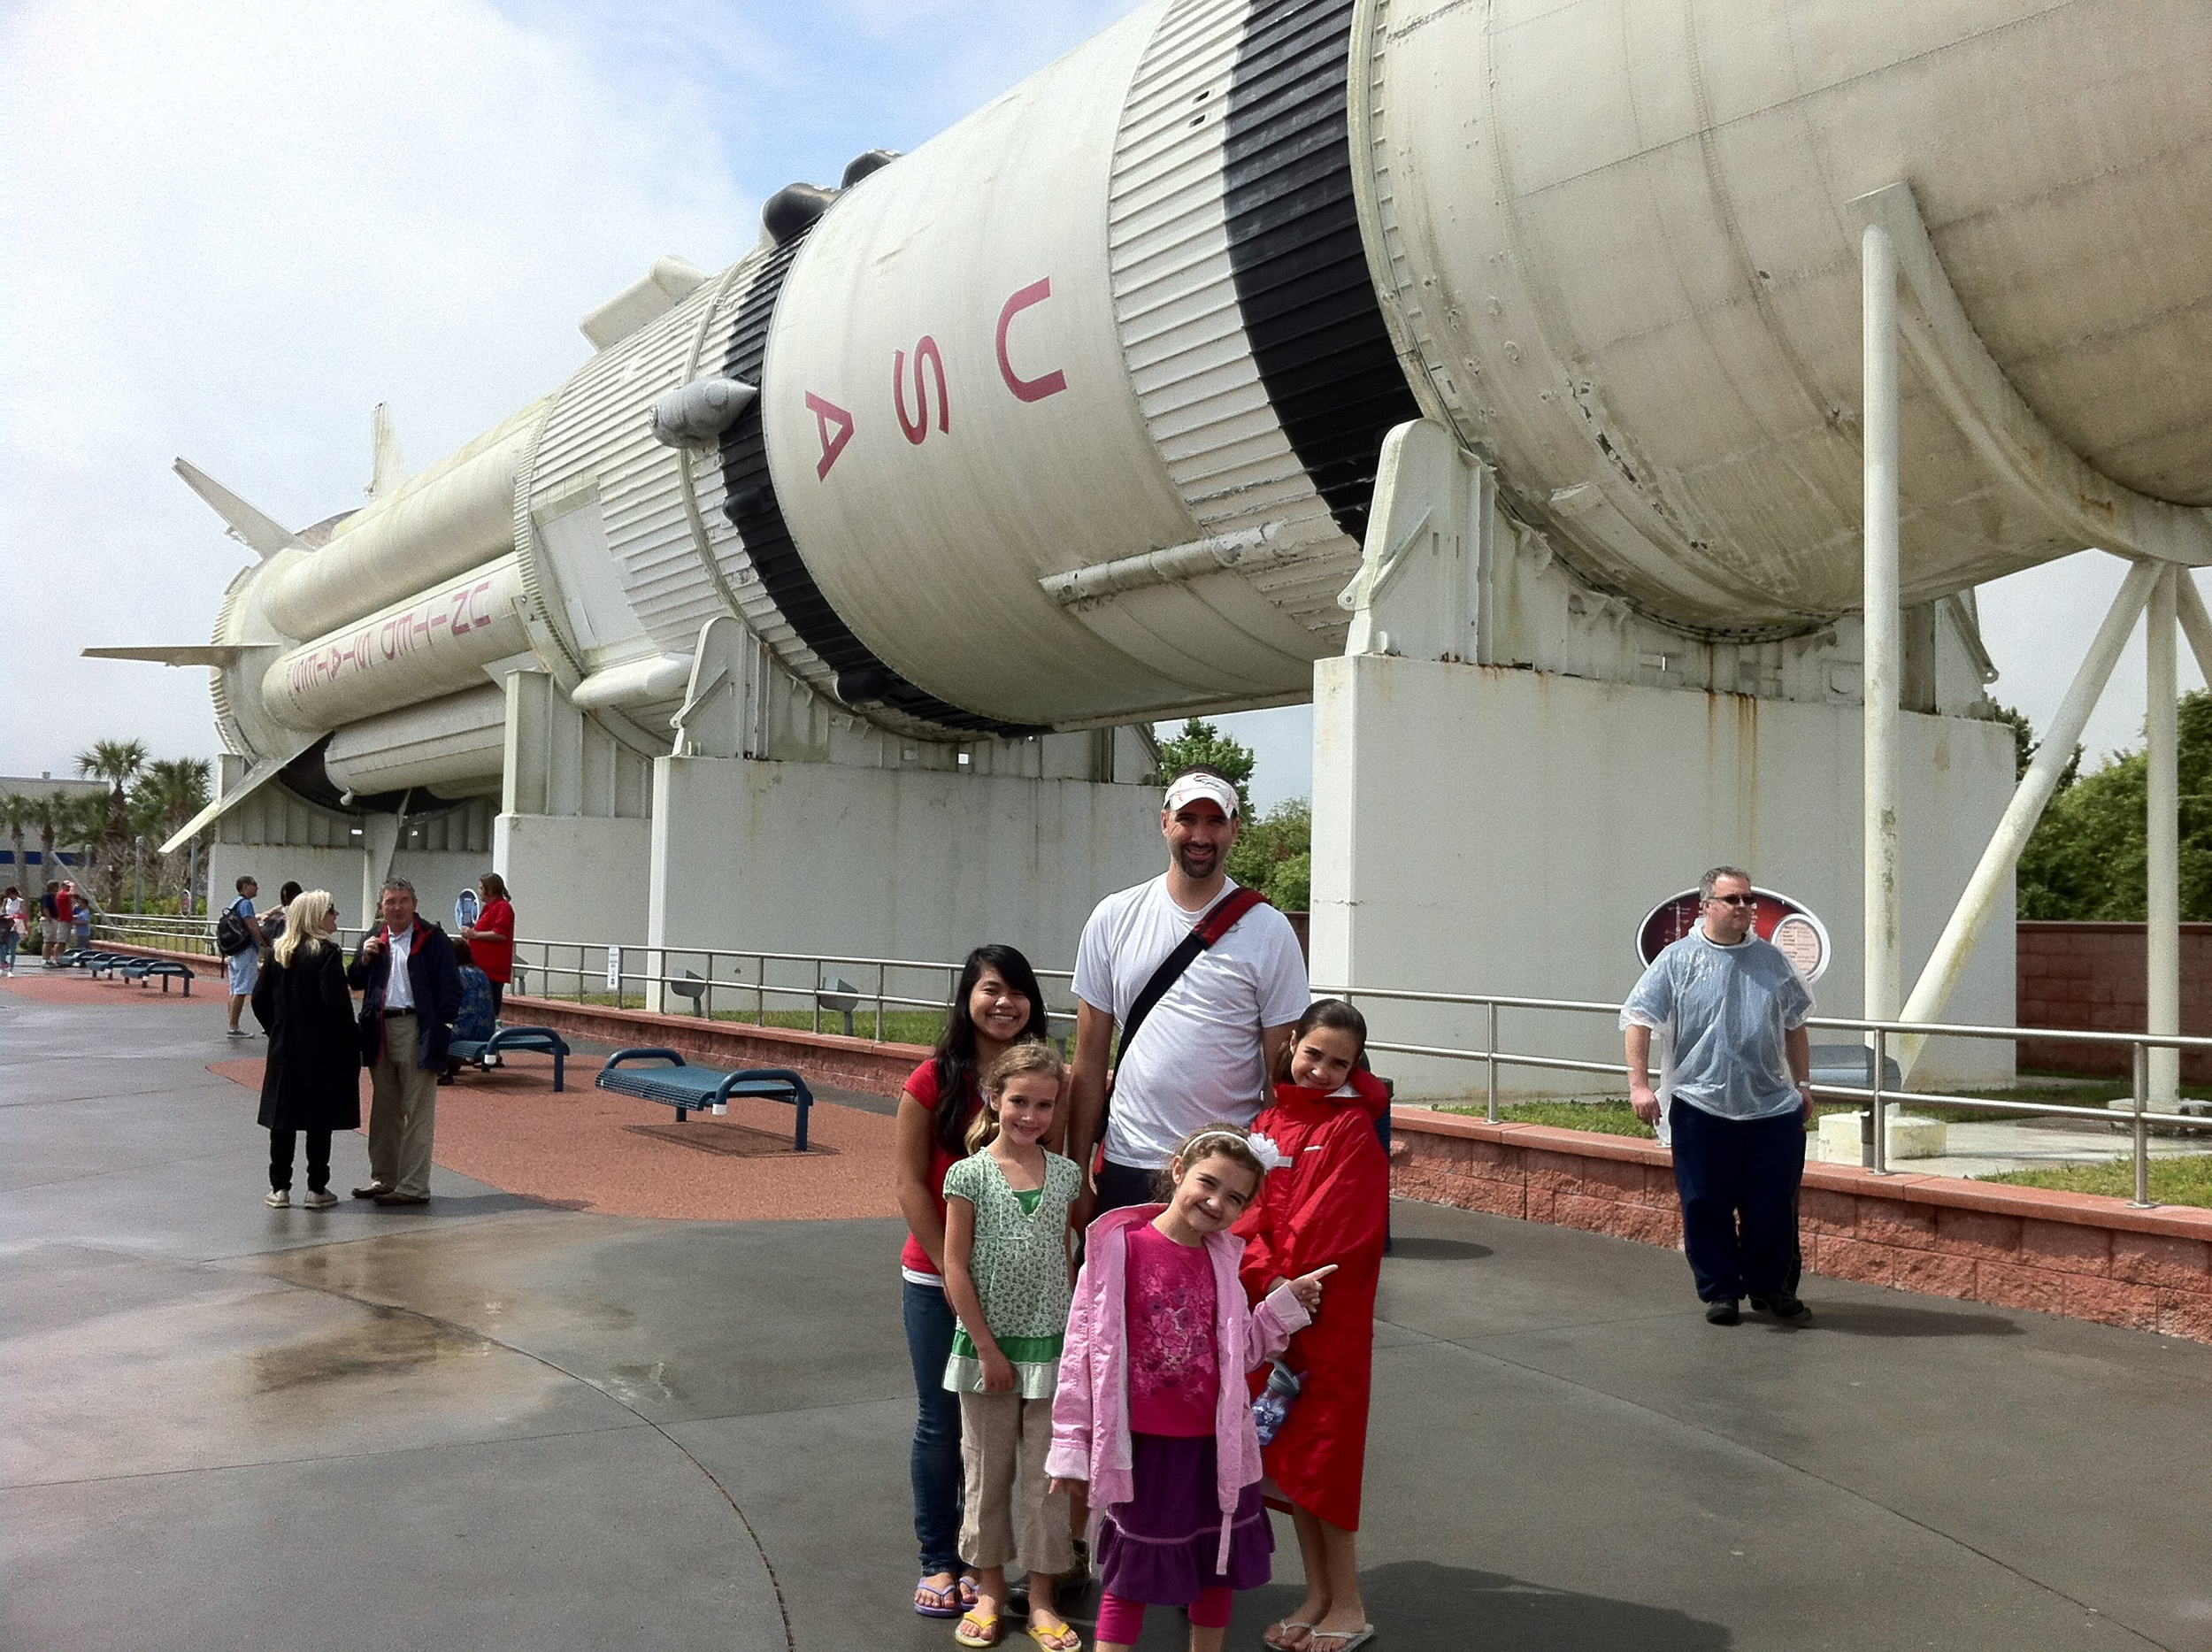 Lots of Rockets and the Space Center.